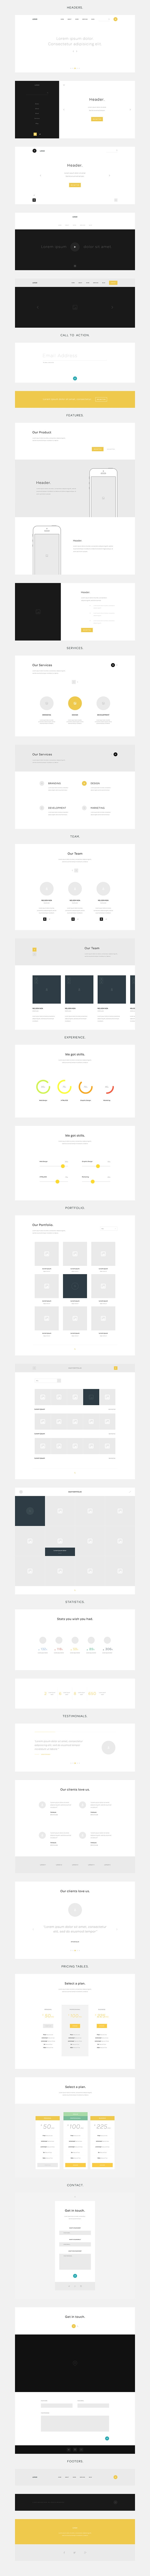 one page wireframes 600